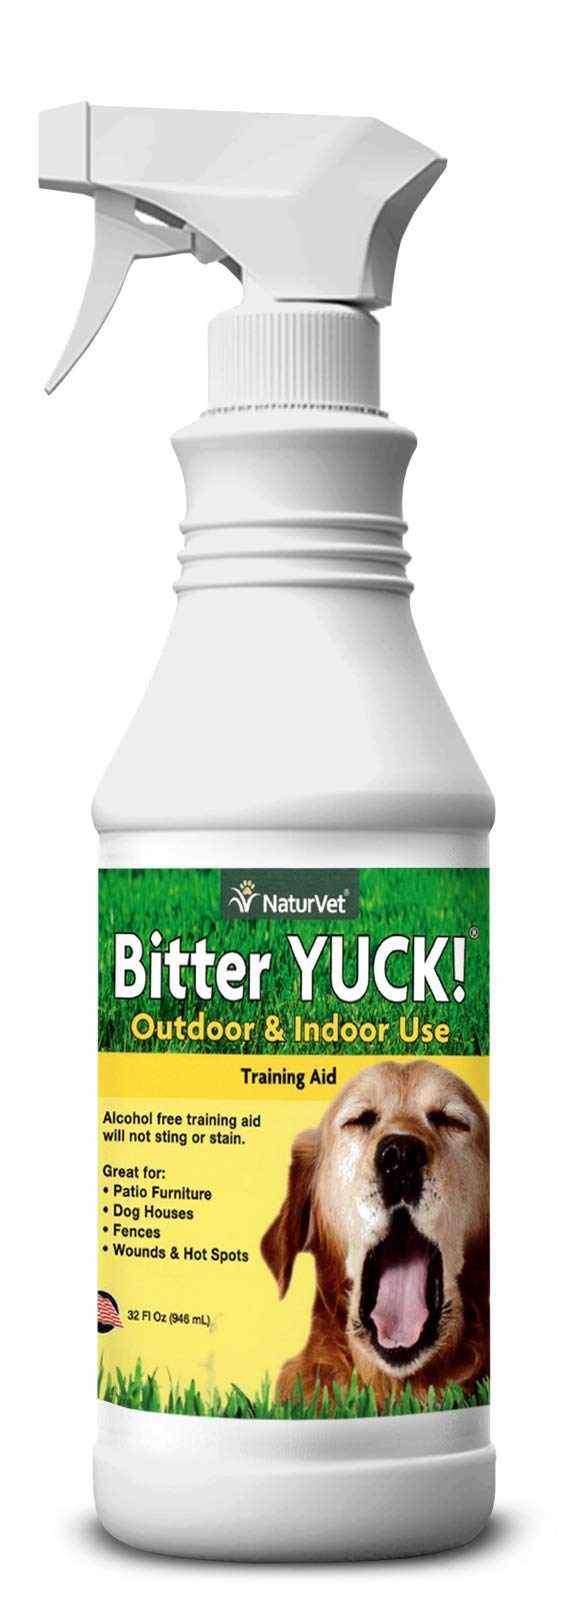 NaturVet - Bitter Yuck - No Chew Spray - Deters Pets from Chewing on Furniture, Paws, Wounds & More - Water Based Formula Does Not Sting or Stain - for Cats & Dogs (32 oz) by NaturVet